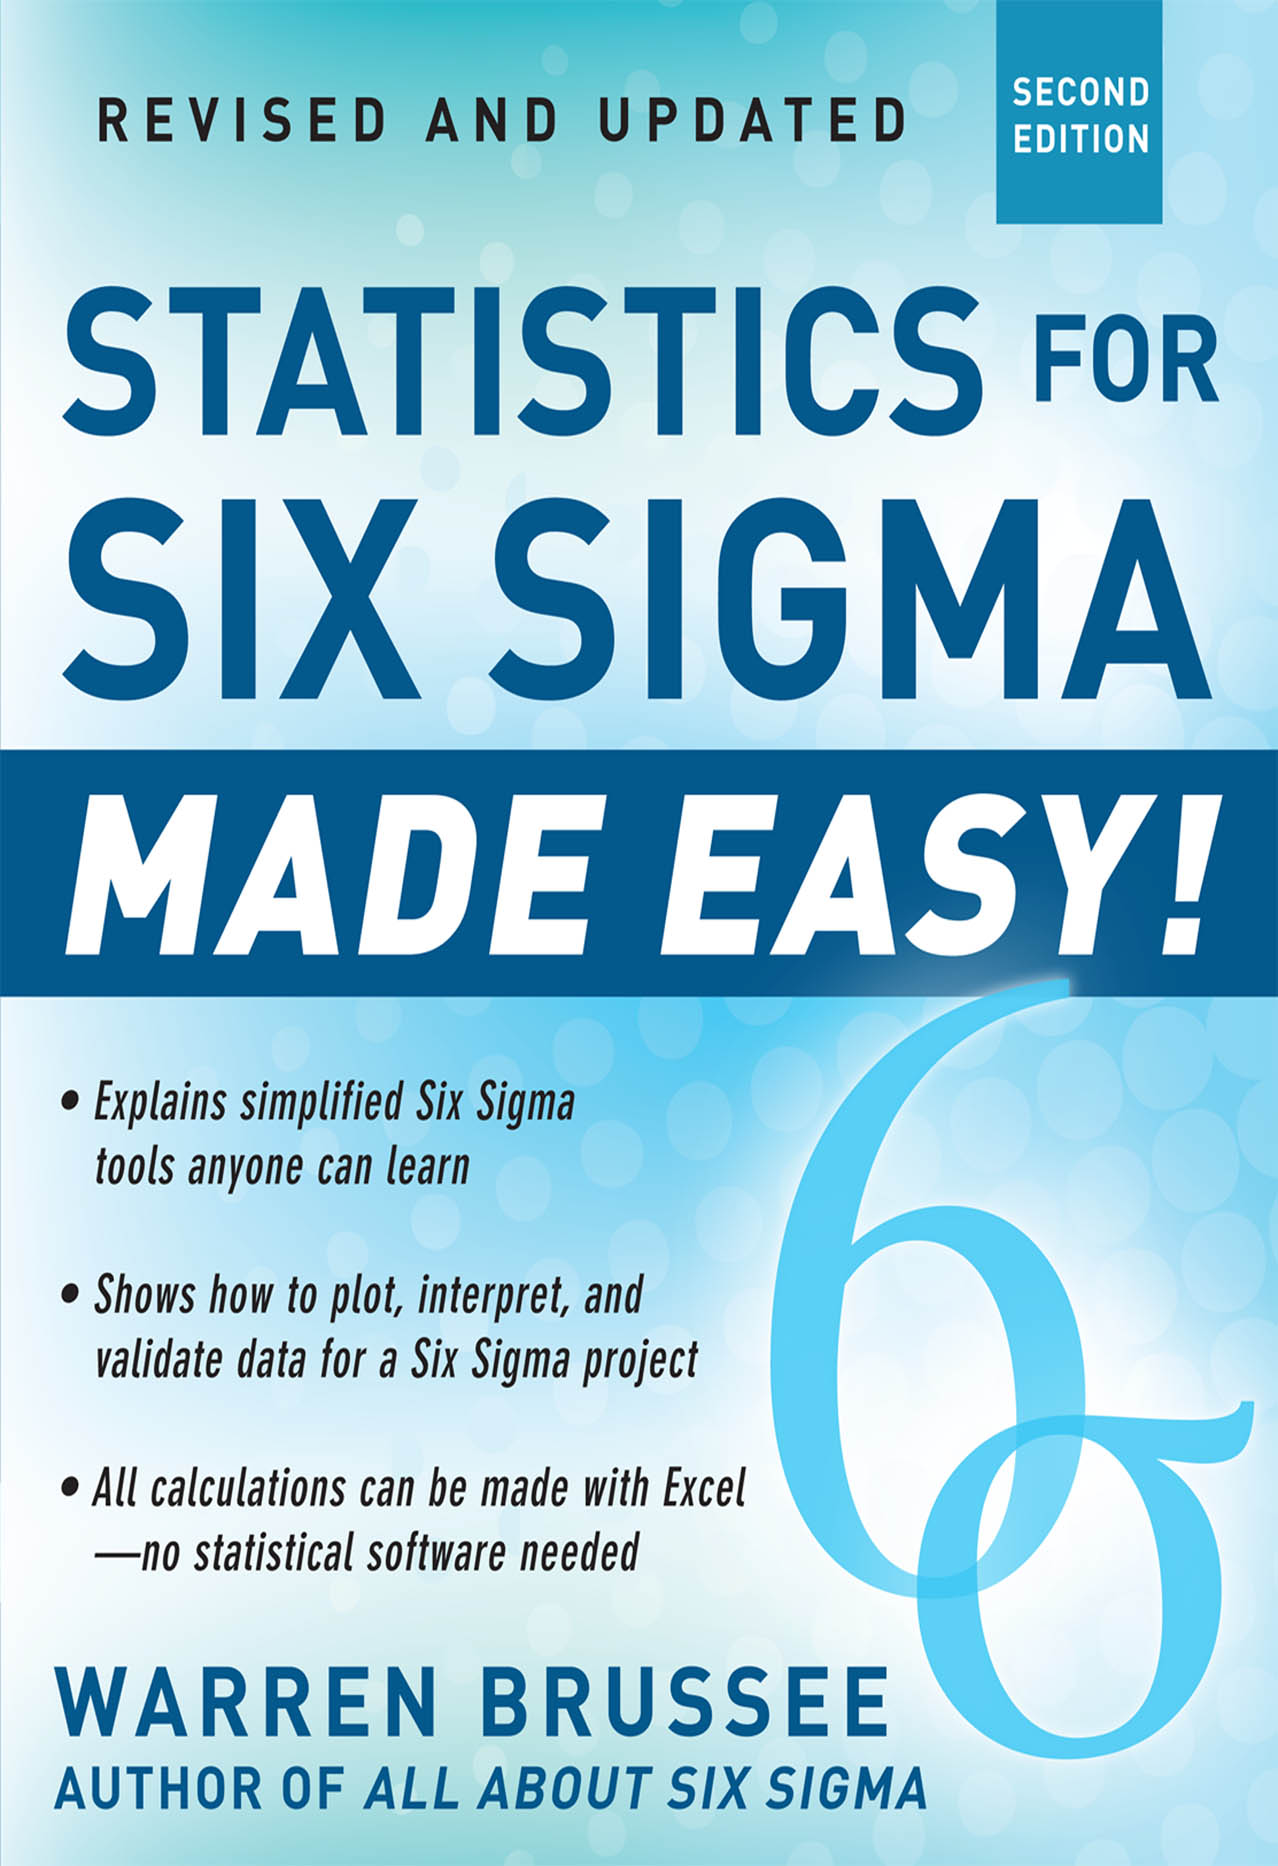 Download Ebook Statistics for Six Sigma Made Easy! Revised and Expanded Second Edition (2nd ed.) by Warren Brussee Pdf